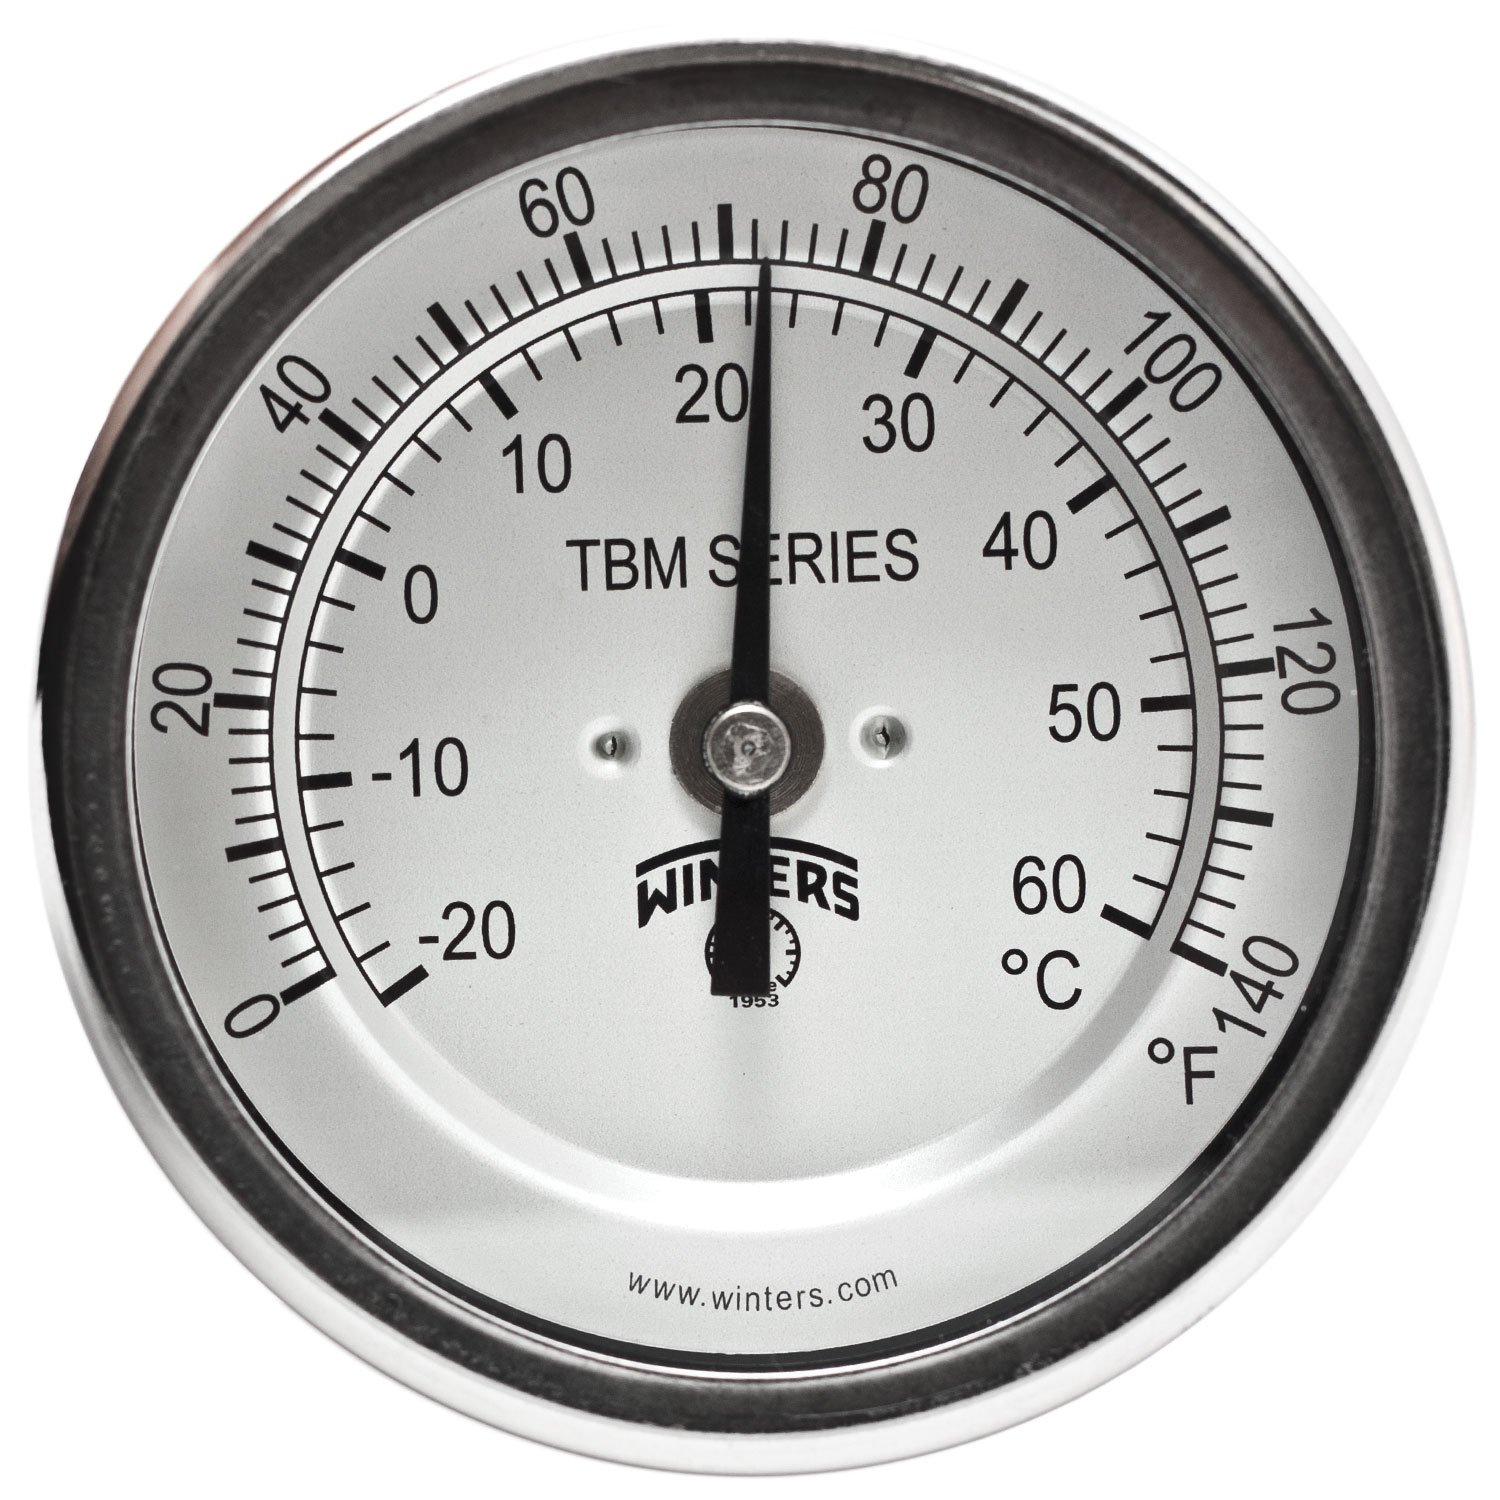 Winters TBM Series Stainless Steel 304 Dual Scale Bi-Metal Thermometer, 4'' Stem, 1/2'' NPT Fixed Center Back Mount Connection, 3'' Dial, 0-140 F/C Range